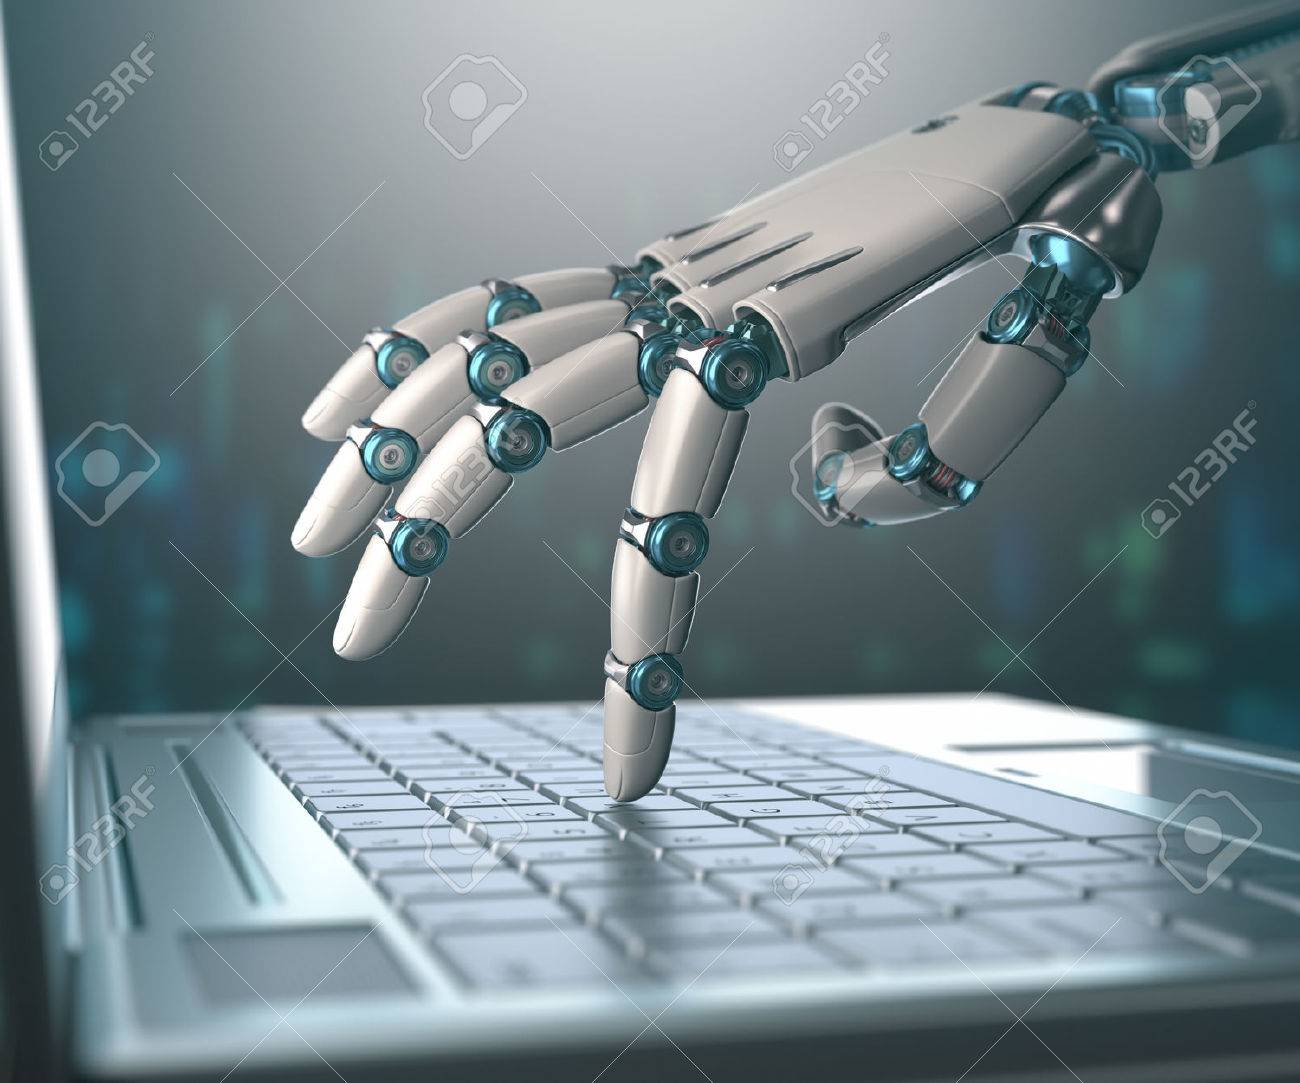 Robotic hand, accessing on laptop, the virtual world of information. Concept of artificial intelligence and replacement of humans by machines. - 51001614